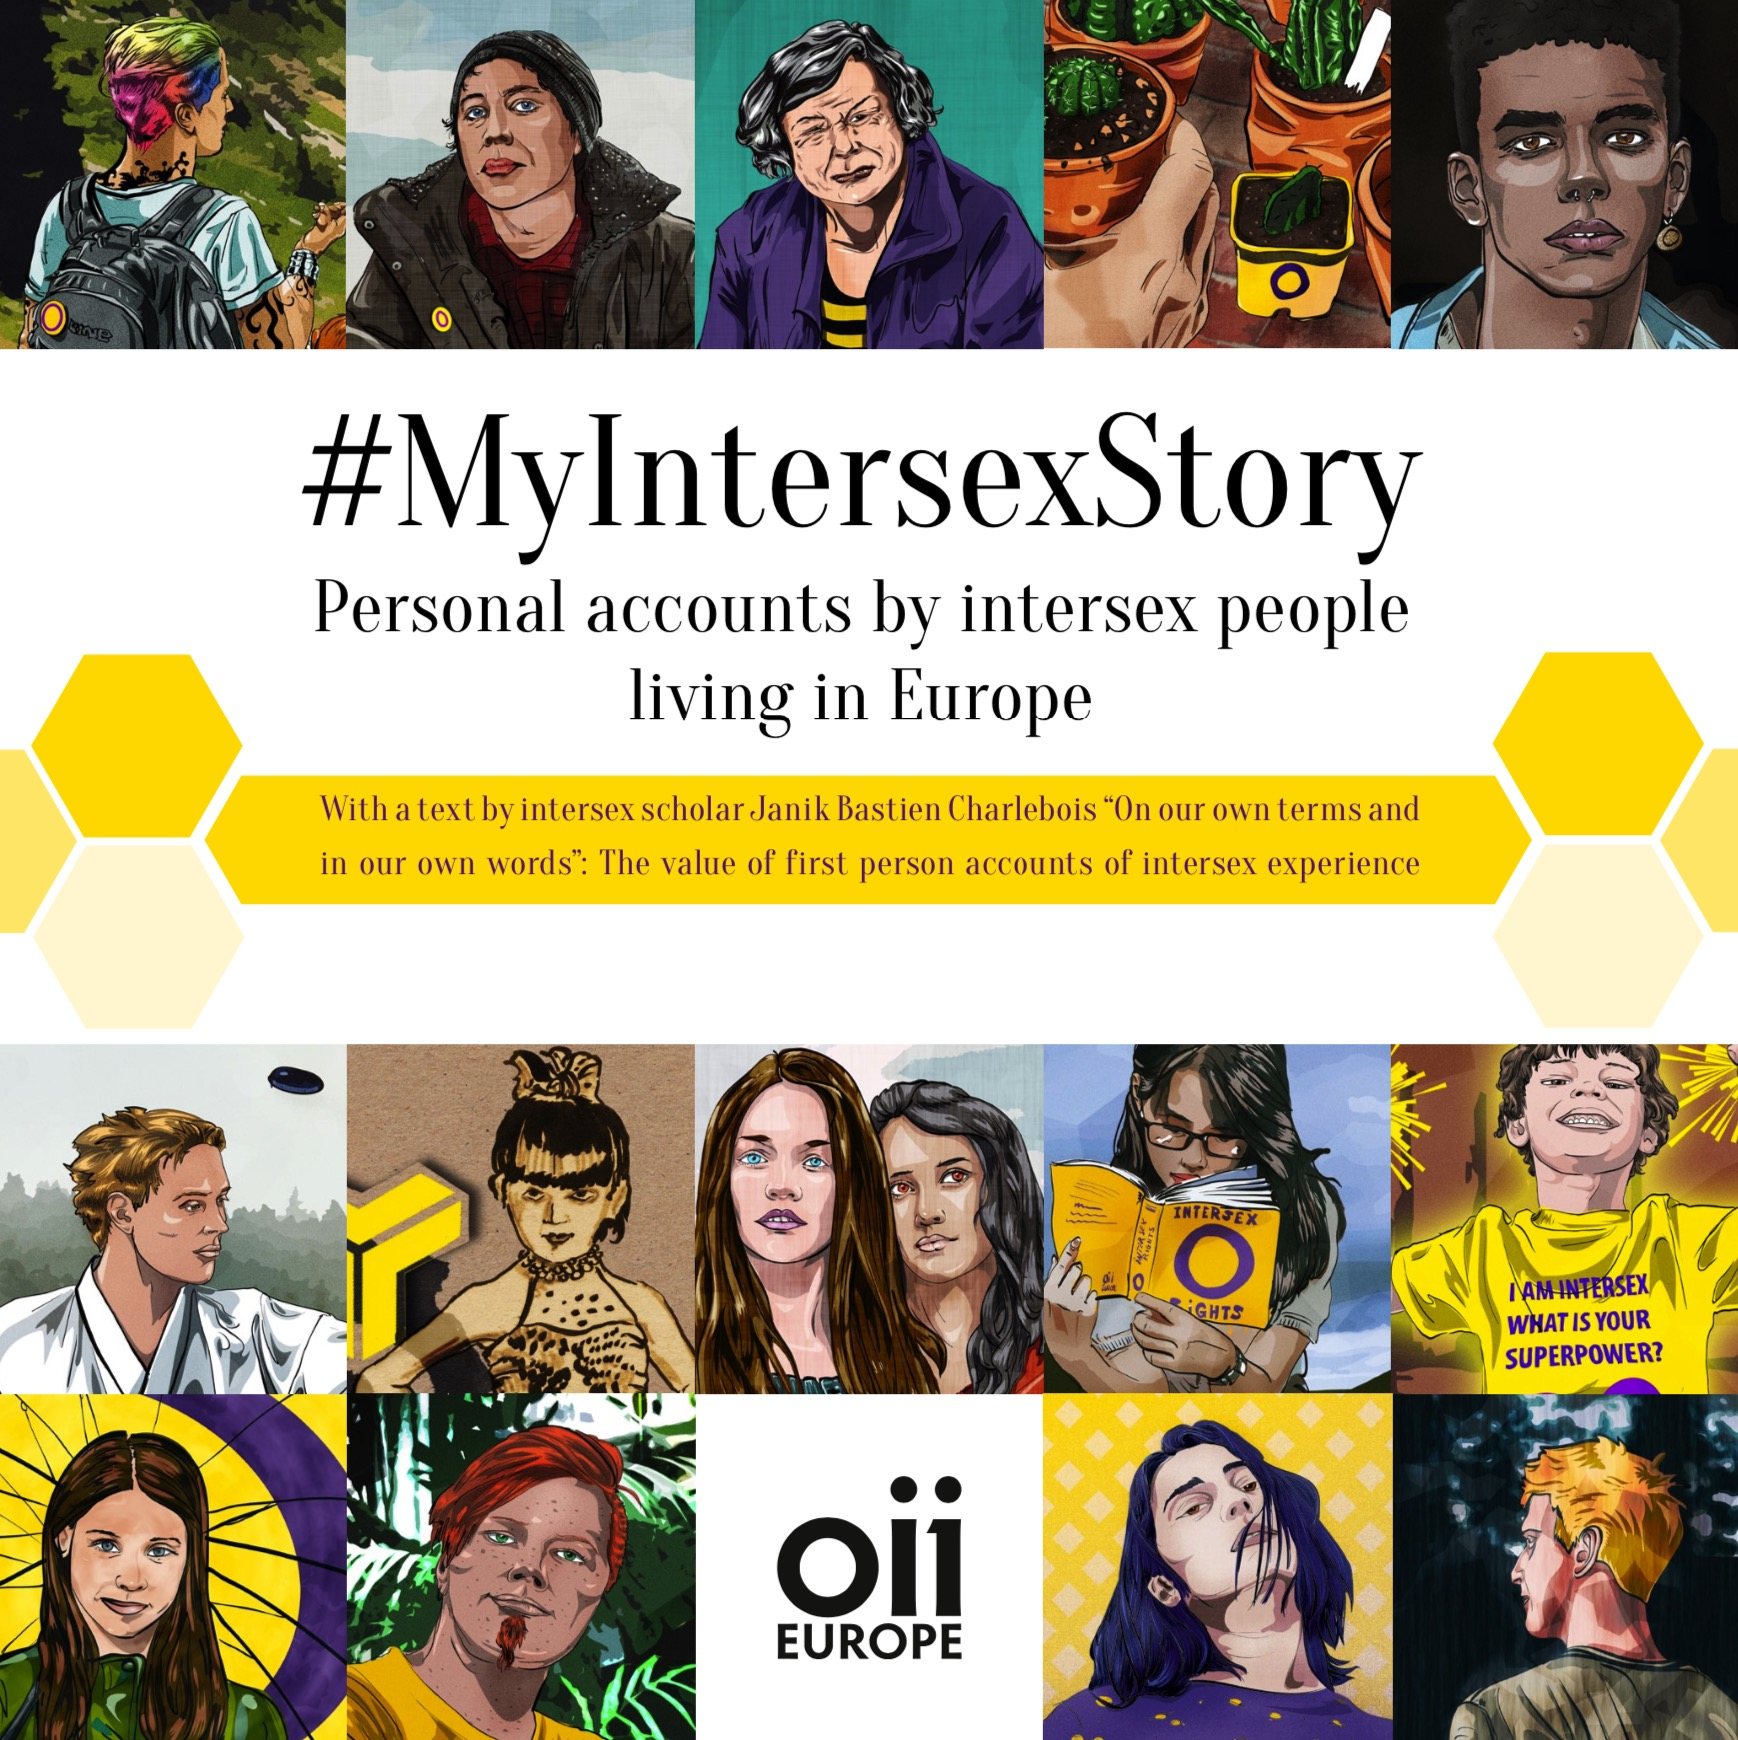 #MyIntersexStory – Personal accounts by intersex people living in Europe